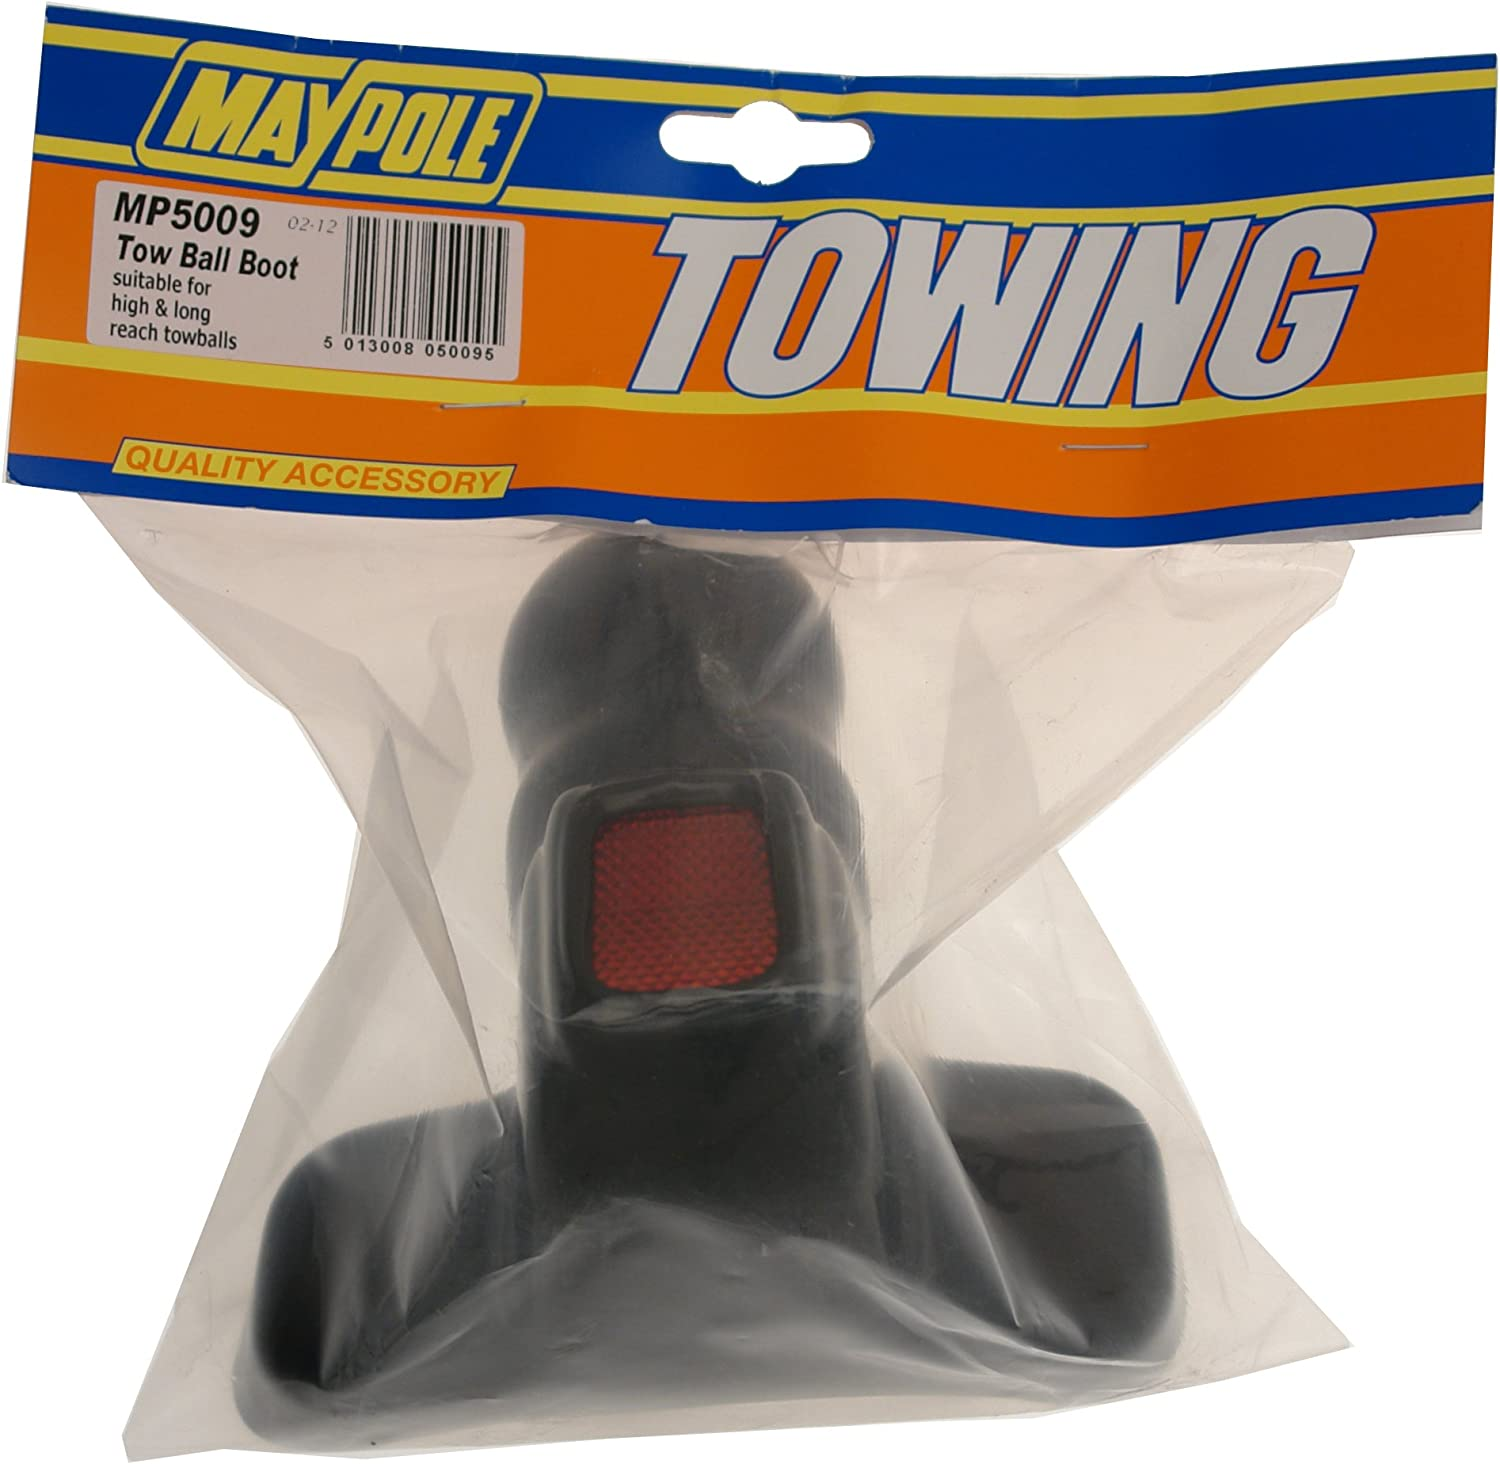 Sealey TB101 tow ball cover pvc